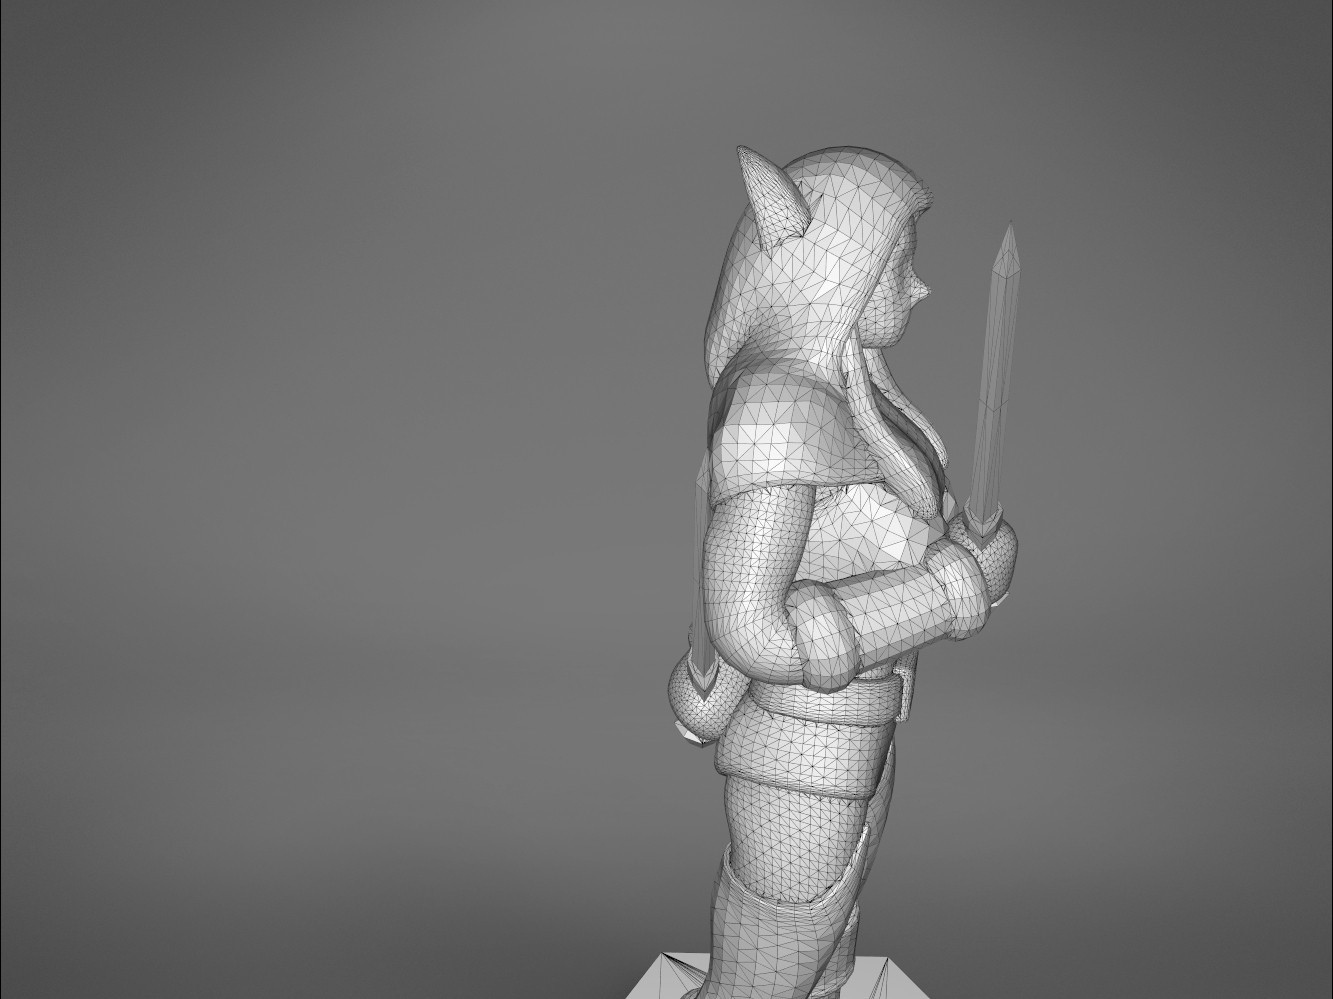 Rogue_2-detail_1.469.jpg Download STL file ELF ROGUE FEMALE CHARACTER GAME FIGURES 3D print model • 3D printer object, 3D-mon